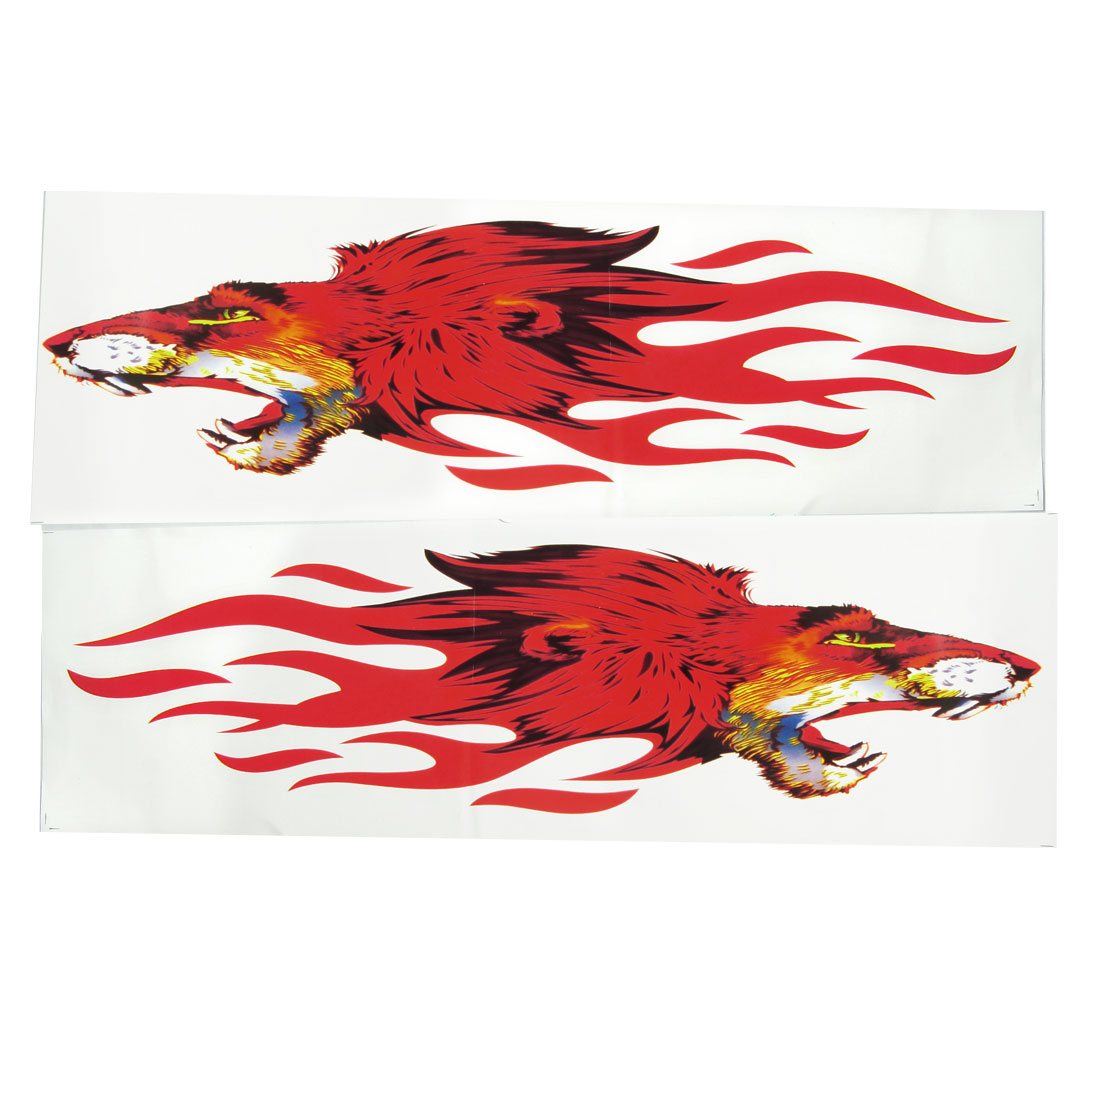 Car Auto Leopard Fiery Blaze Fire Style Sticker Red Black 2 Pcs